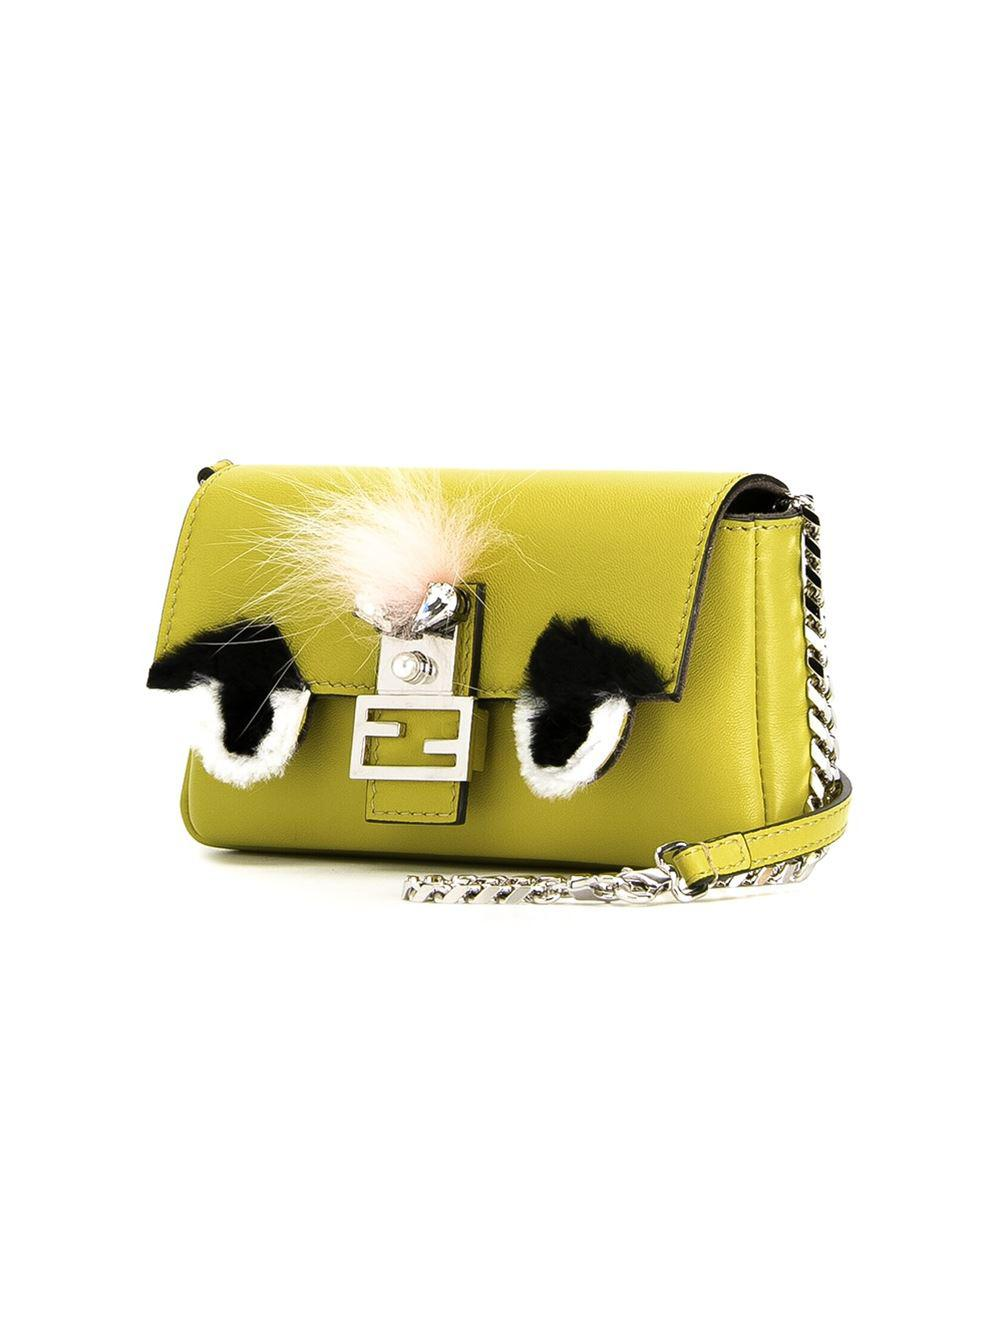 db8620a5881a ... order fendi yellow micro baguette bag bugs crossbody bag lyst. view  fullscreen 71b77 382e2 ...